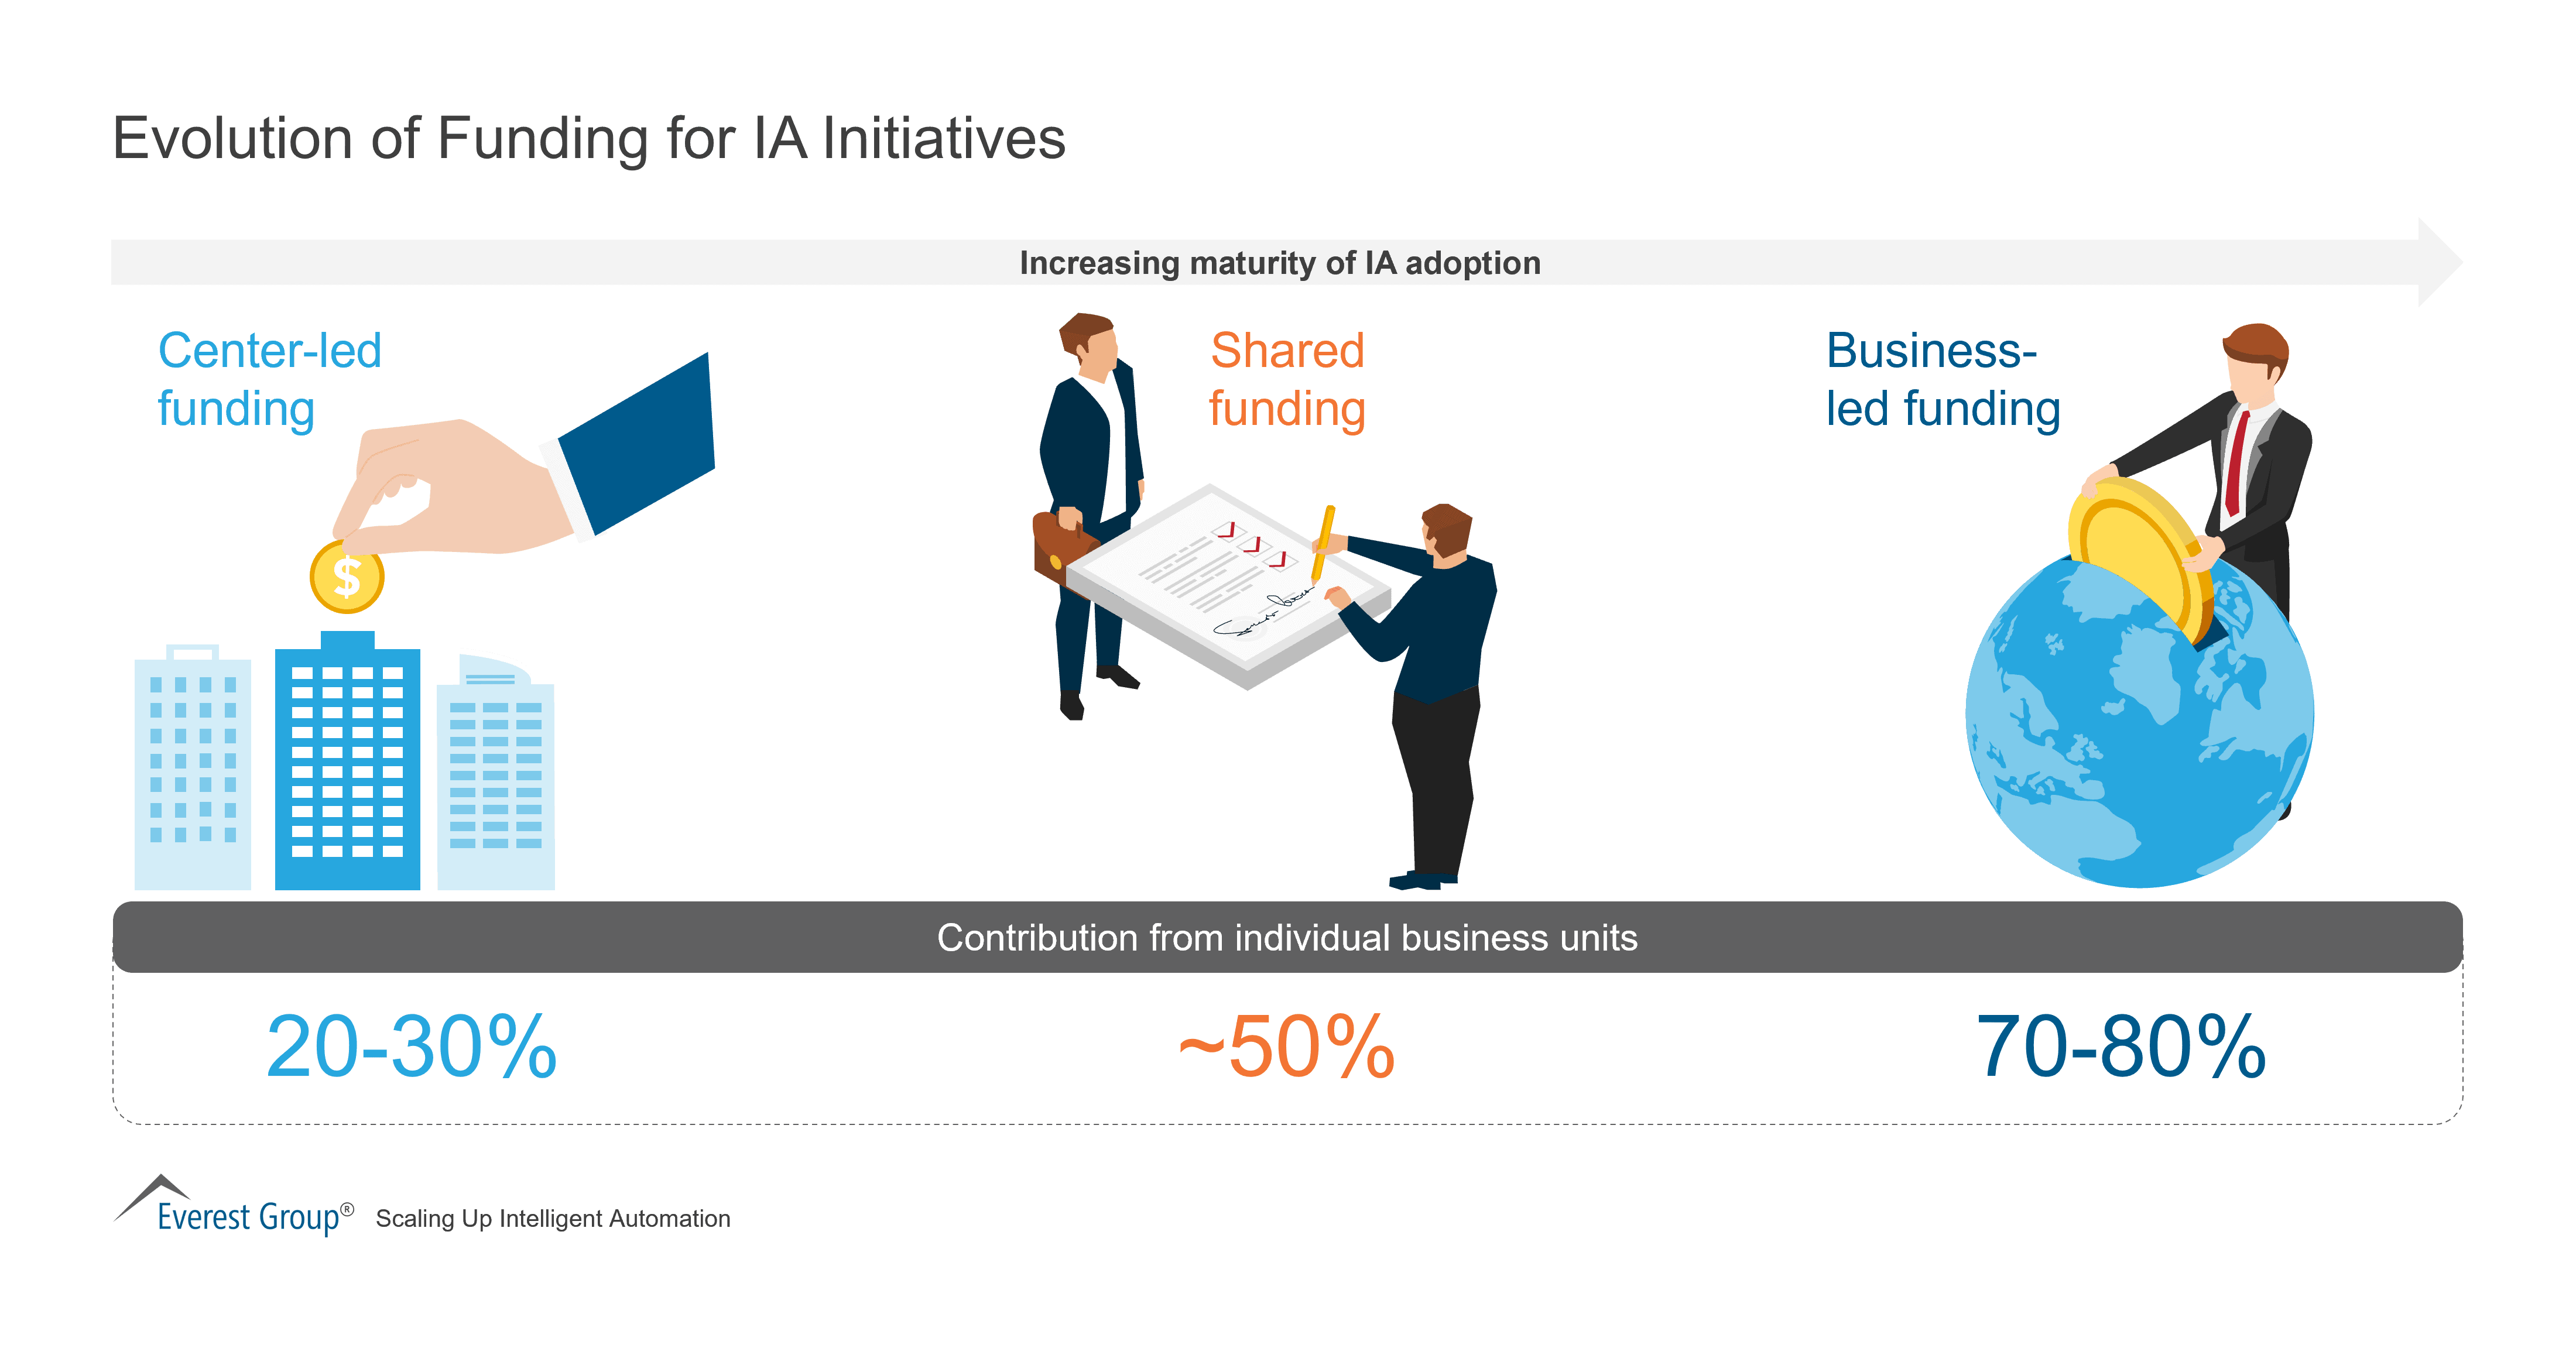 Evolution of Funding for IA Initiatives